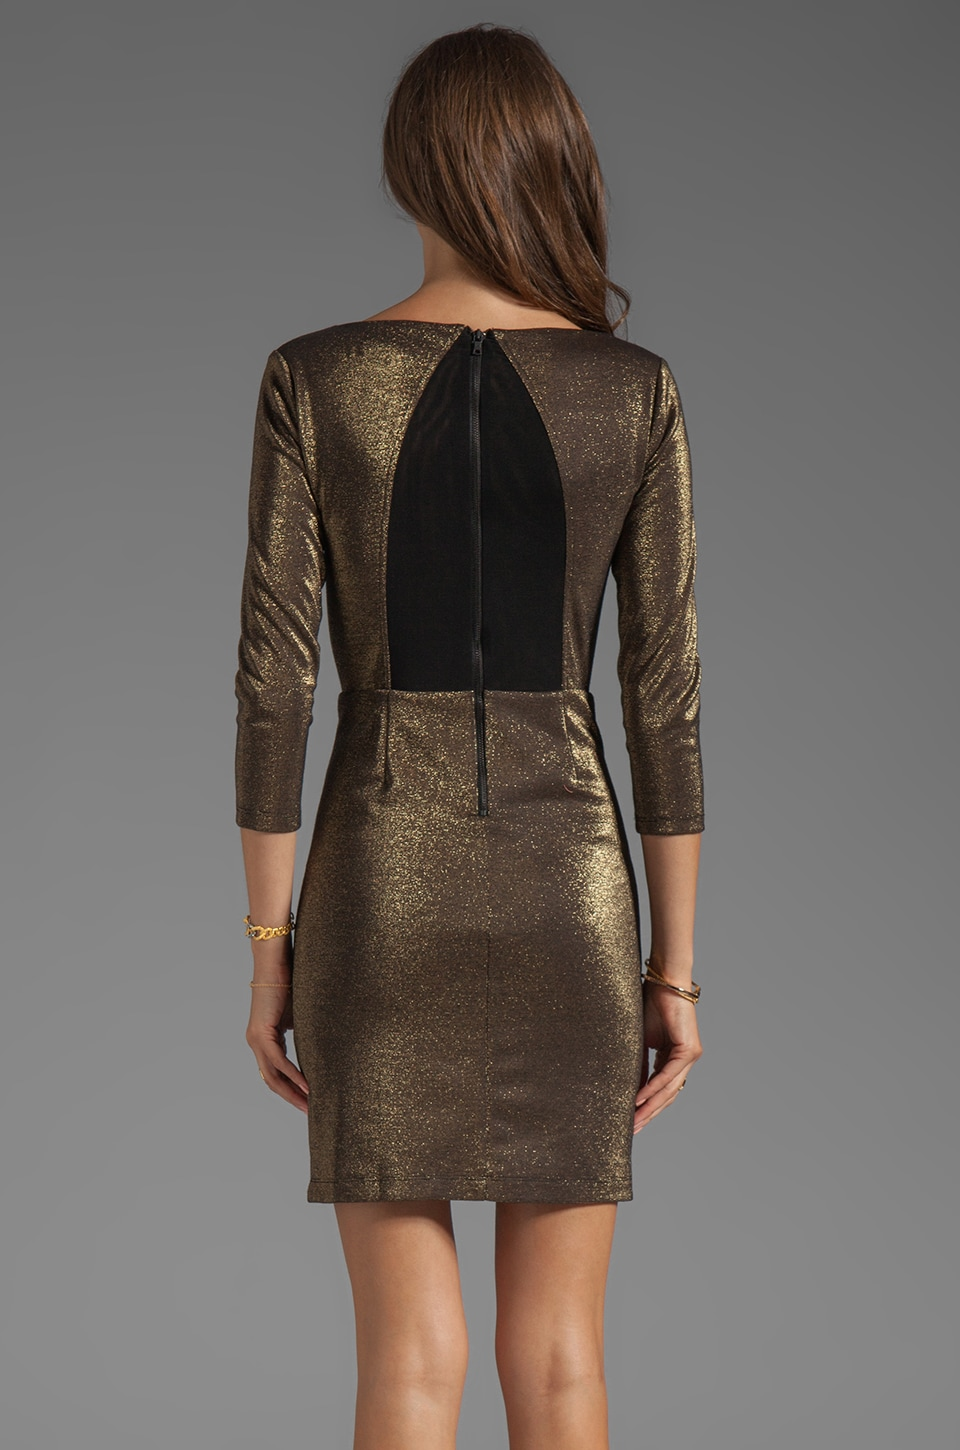 Alice + Olivia Cameo Cutout Back Fitted Dress in Black/Gold